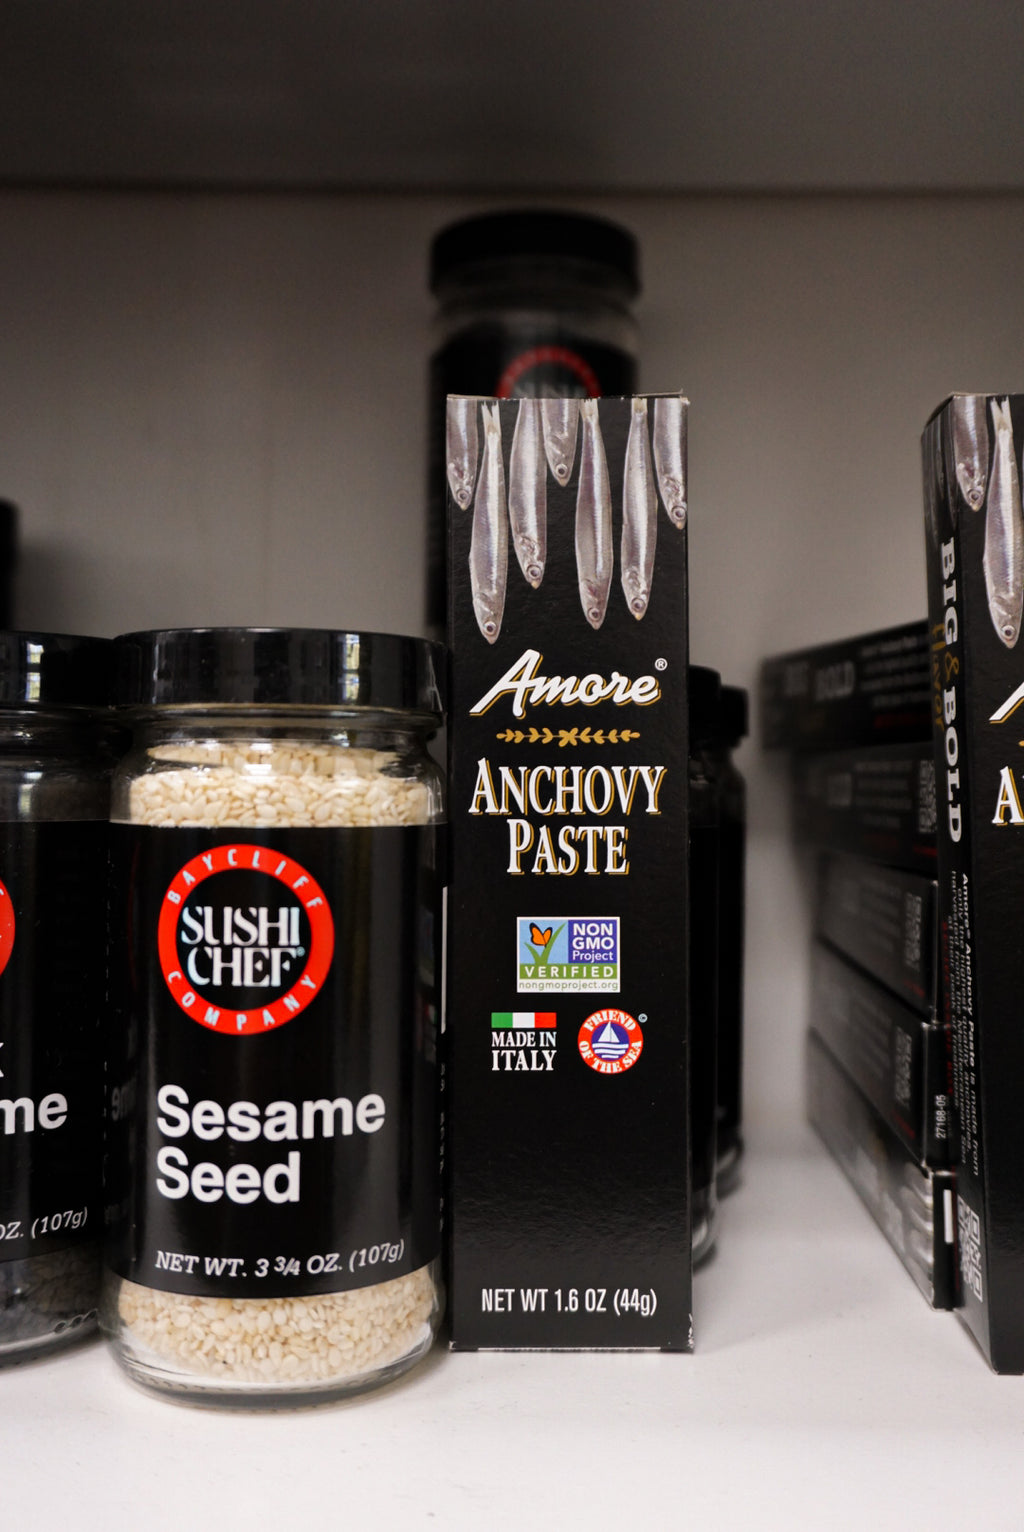 Amore Anchovy Paste 1.58 oz Tube - Westport